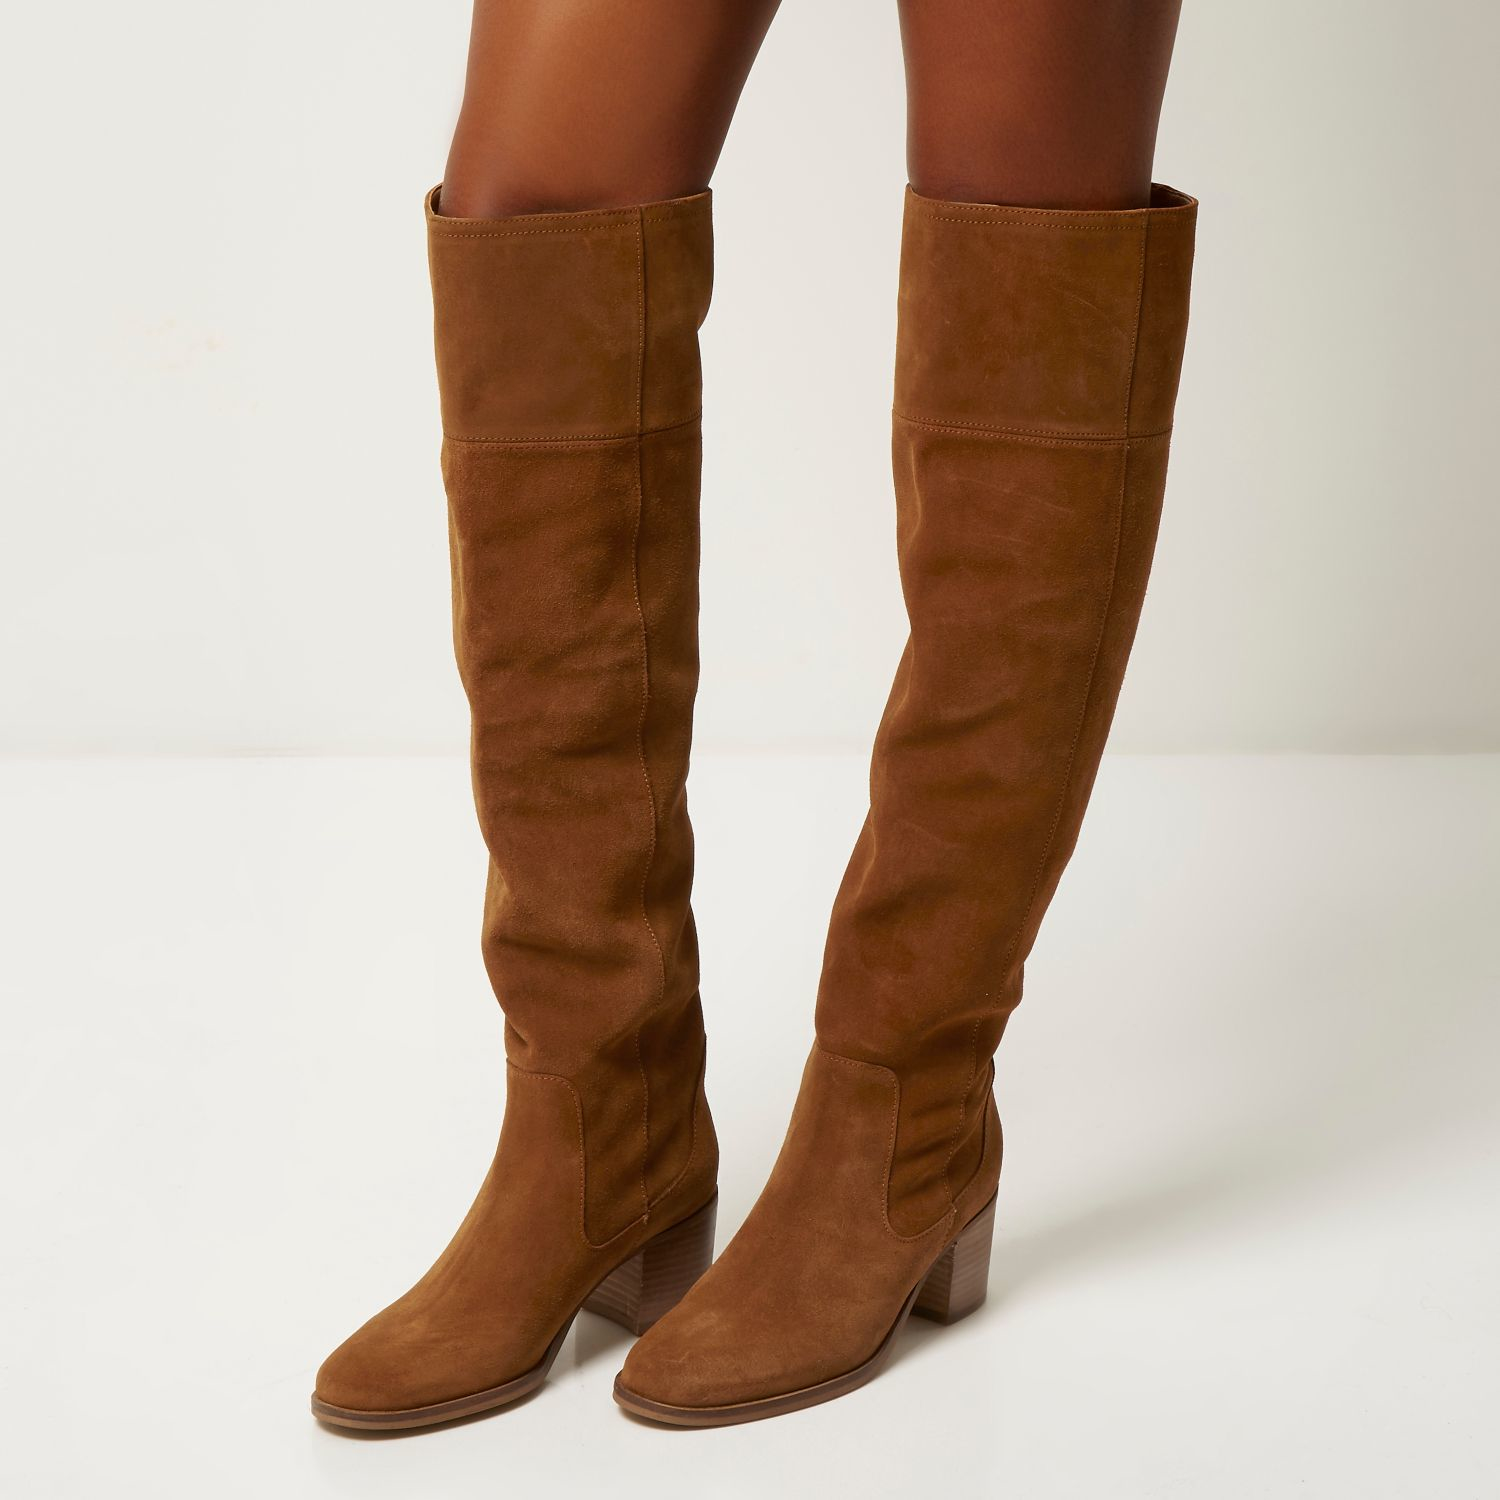 Find a great selection of women's knee-high boots at cripatsur.ga Browse tall cowboy boots, rain boots, riding boots and more. Totally free shipping and returns on all the best brands including Steve Madden, Sam Edelman, and Blondo.